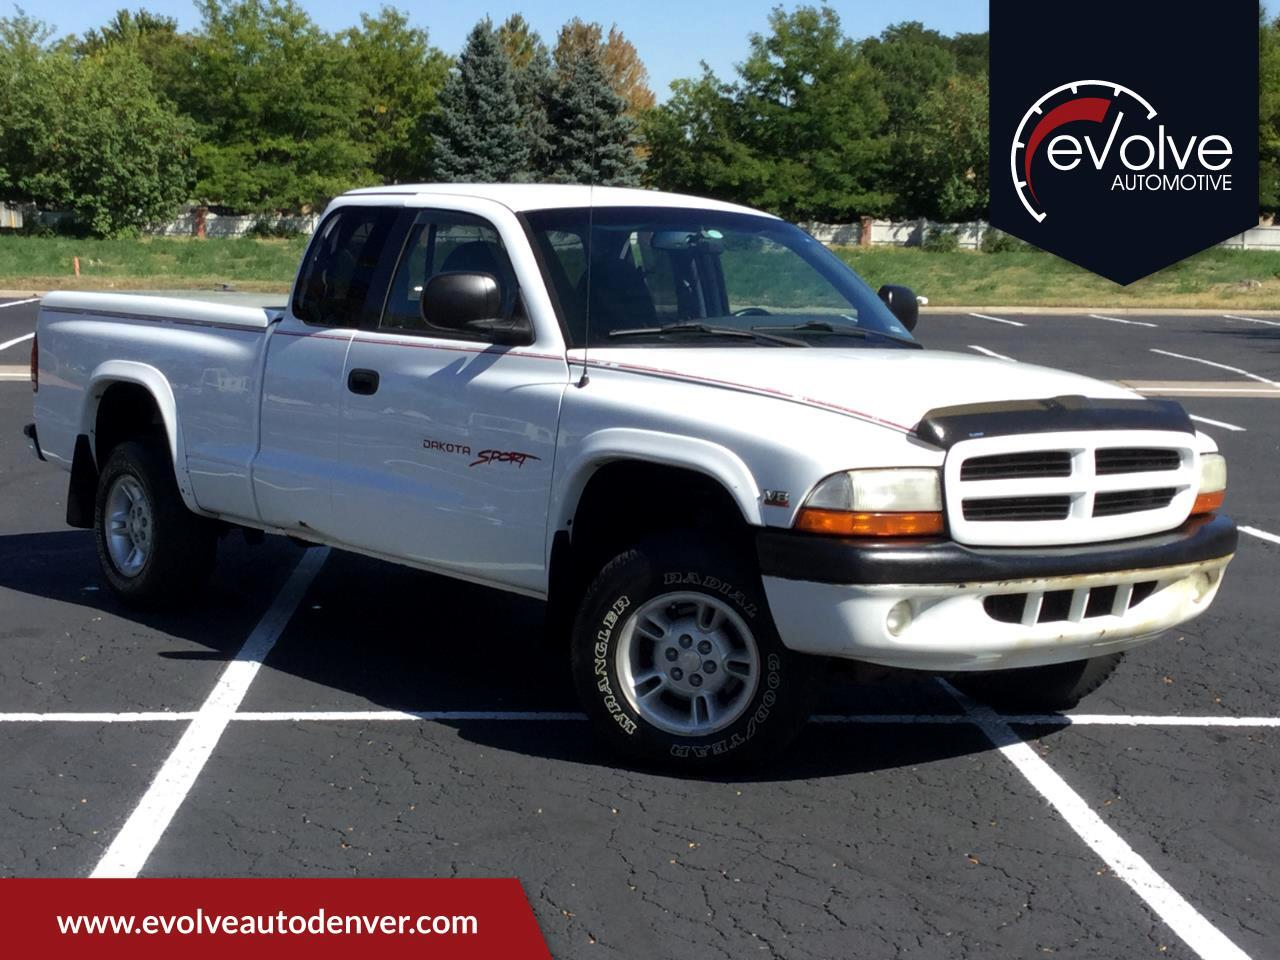 1998 Dodge Dakota Club Cab V8 4X4